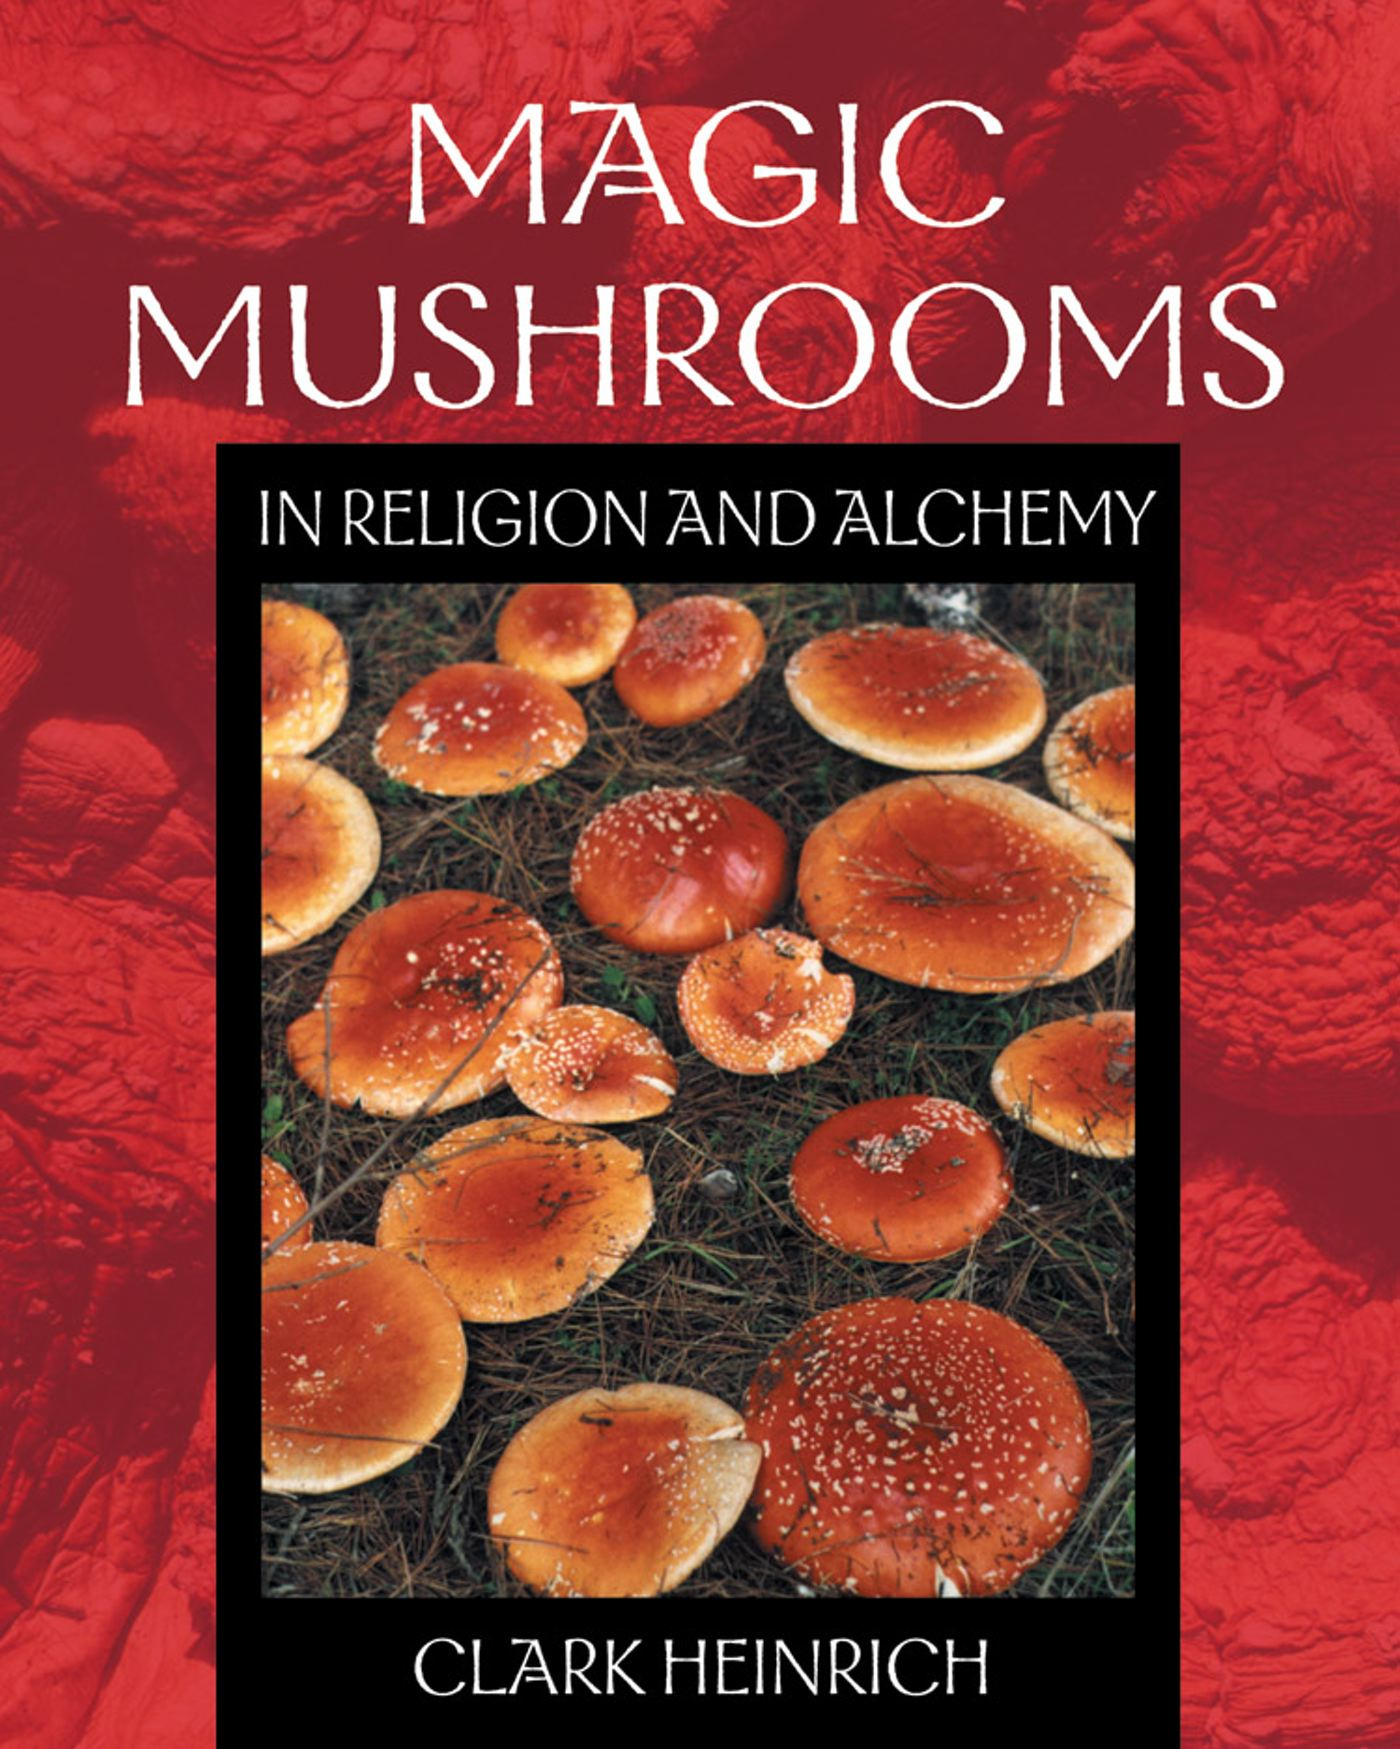 Magic mushrooms in religion and alchemy 9780892819973 hr